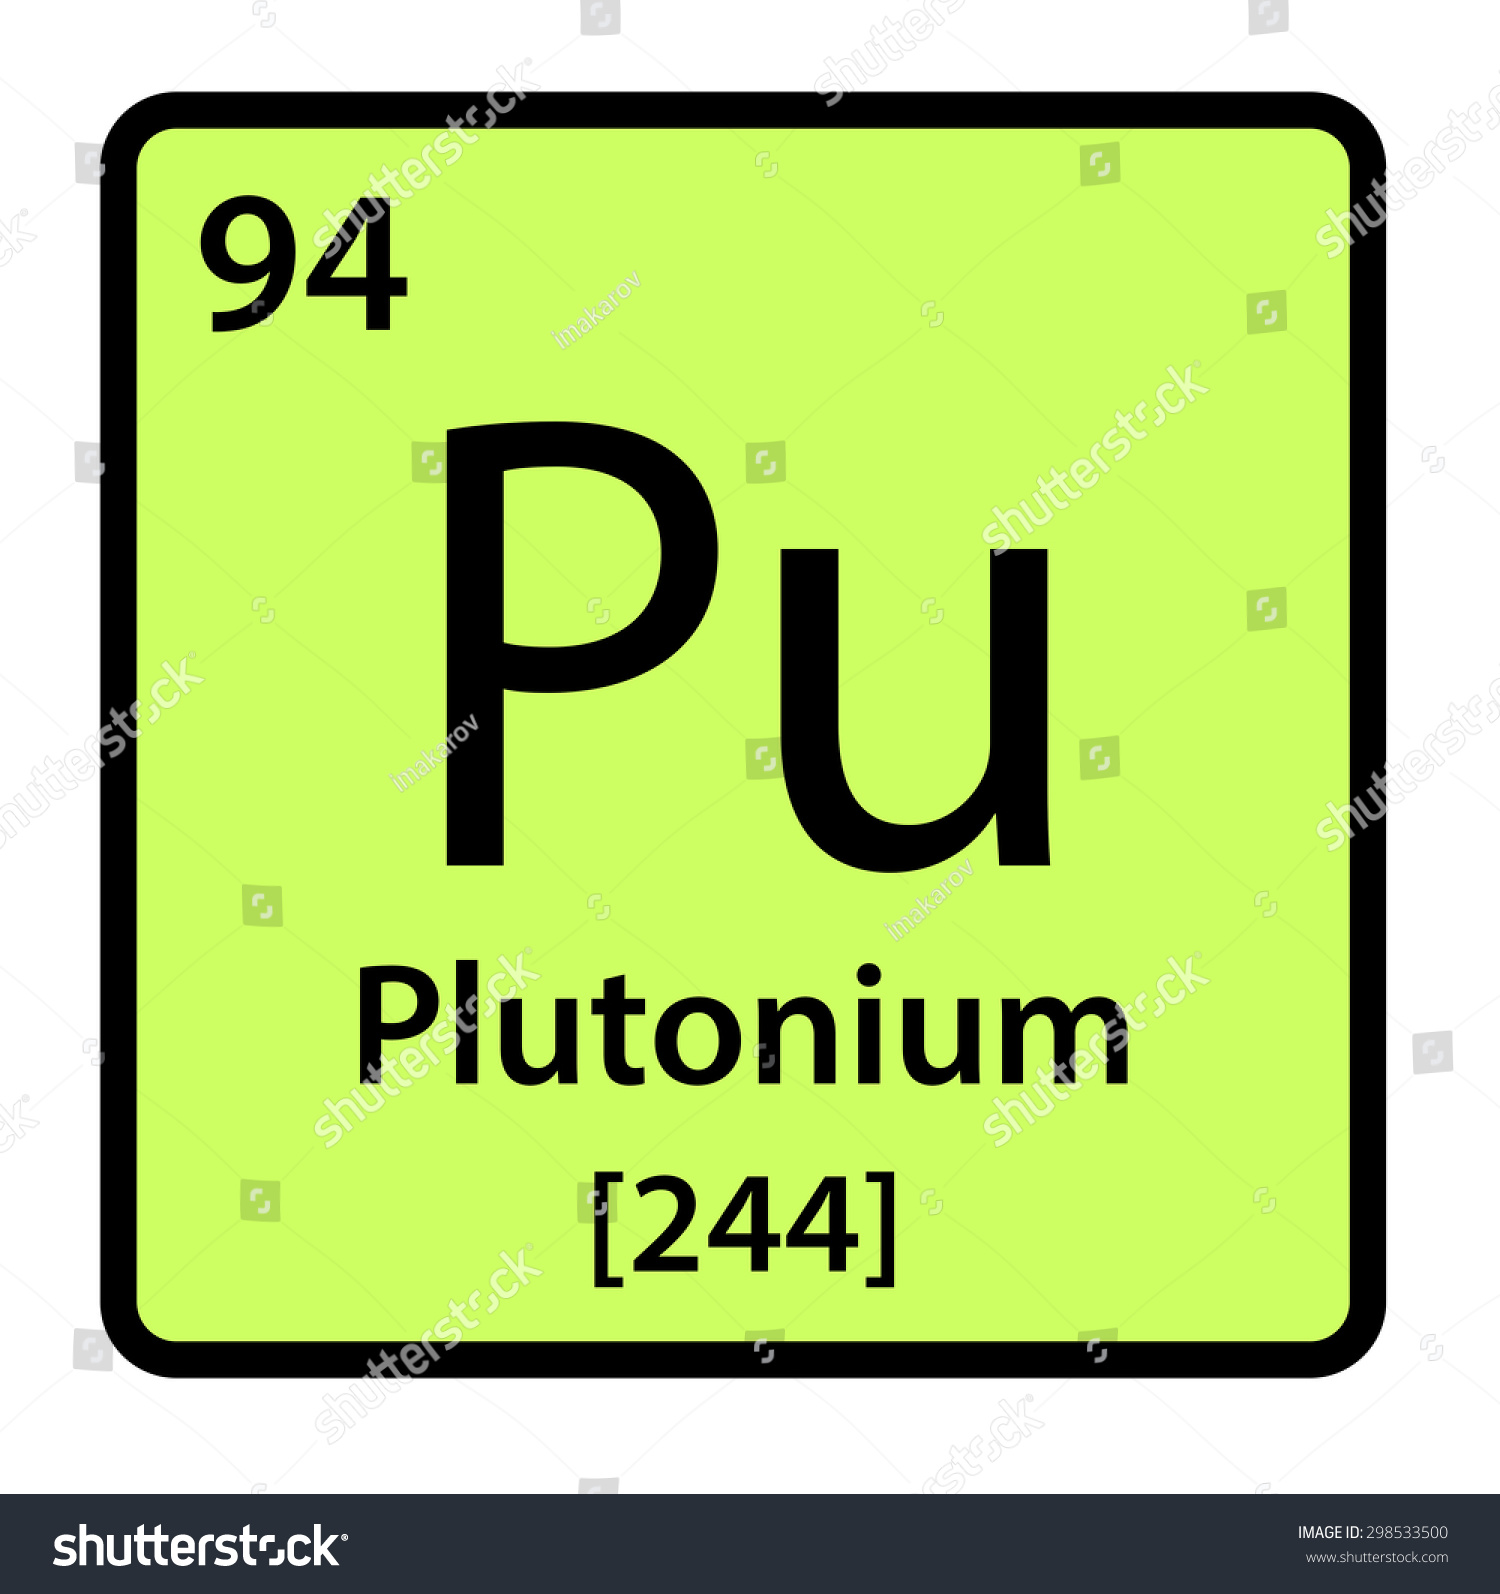 Element plutonium periodic table stock illustration 298533500 element plutonium of the periodic table gamestrikefo Image collections